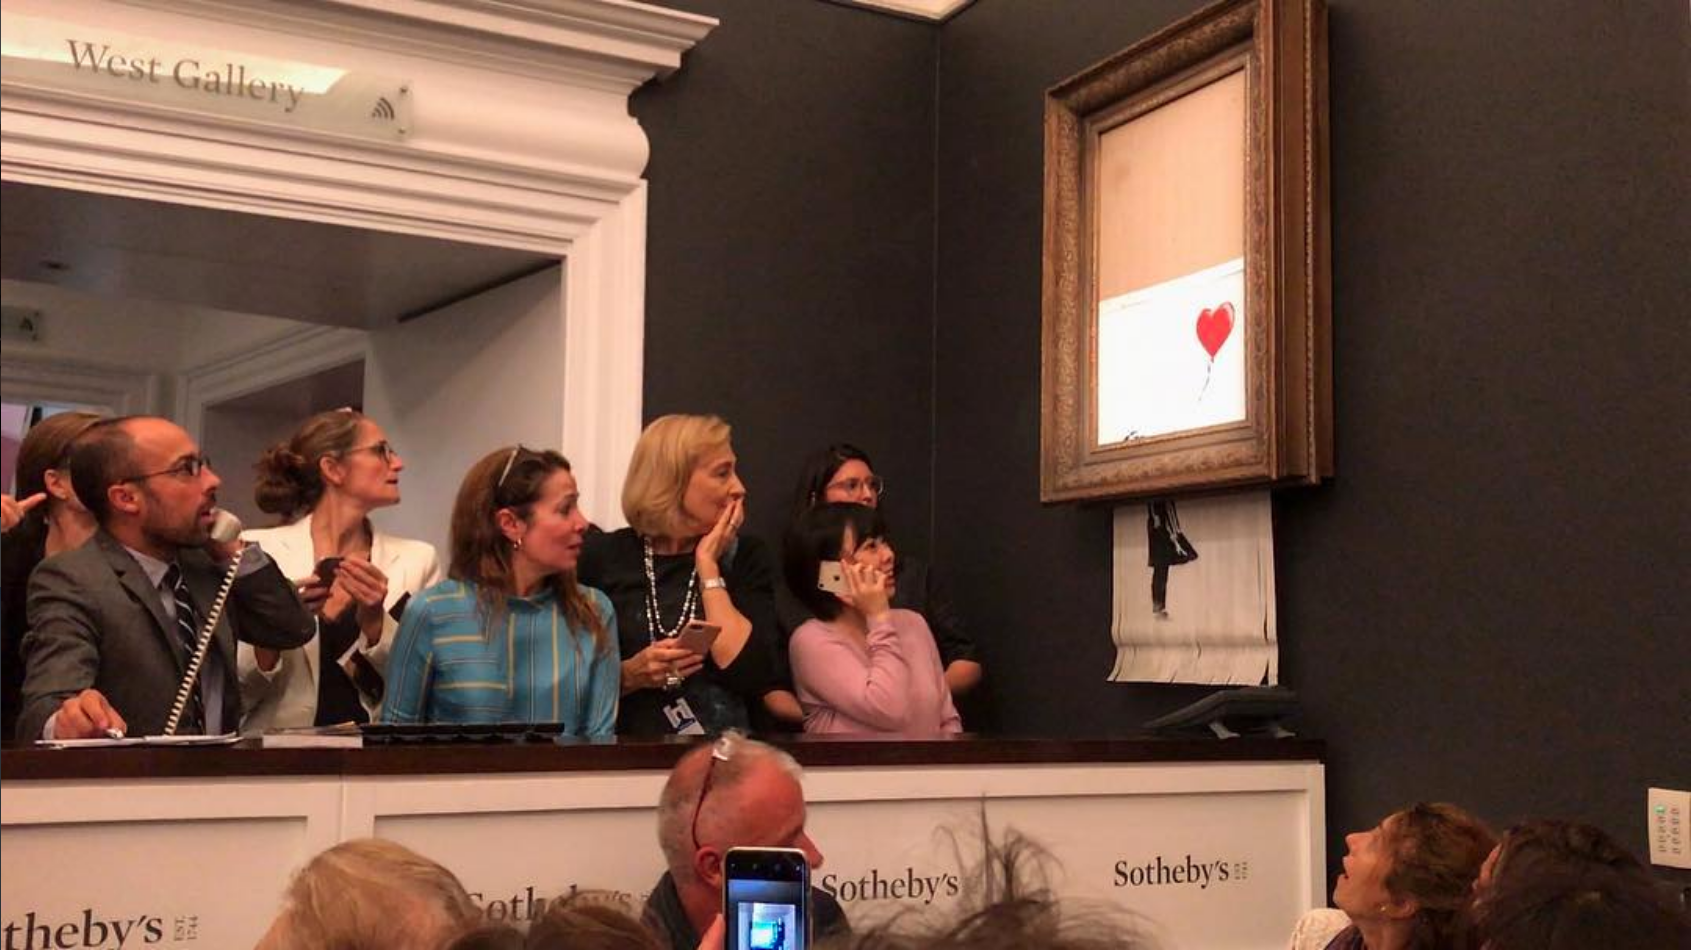 US$1.4m Banksy Painting That Shredded Itself May Become More Valuable